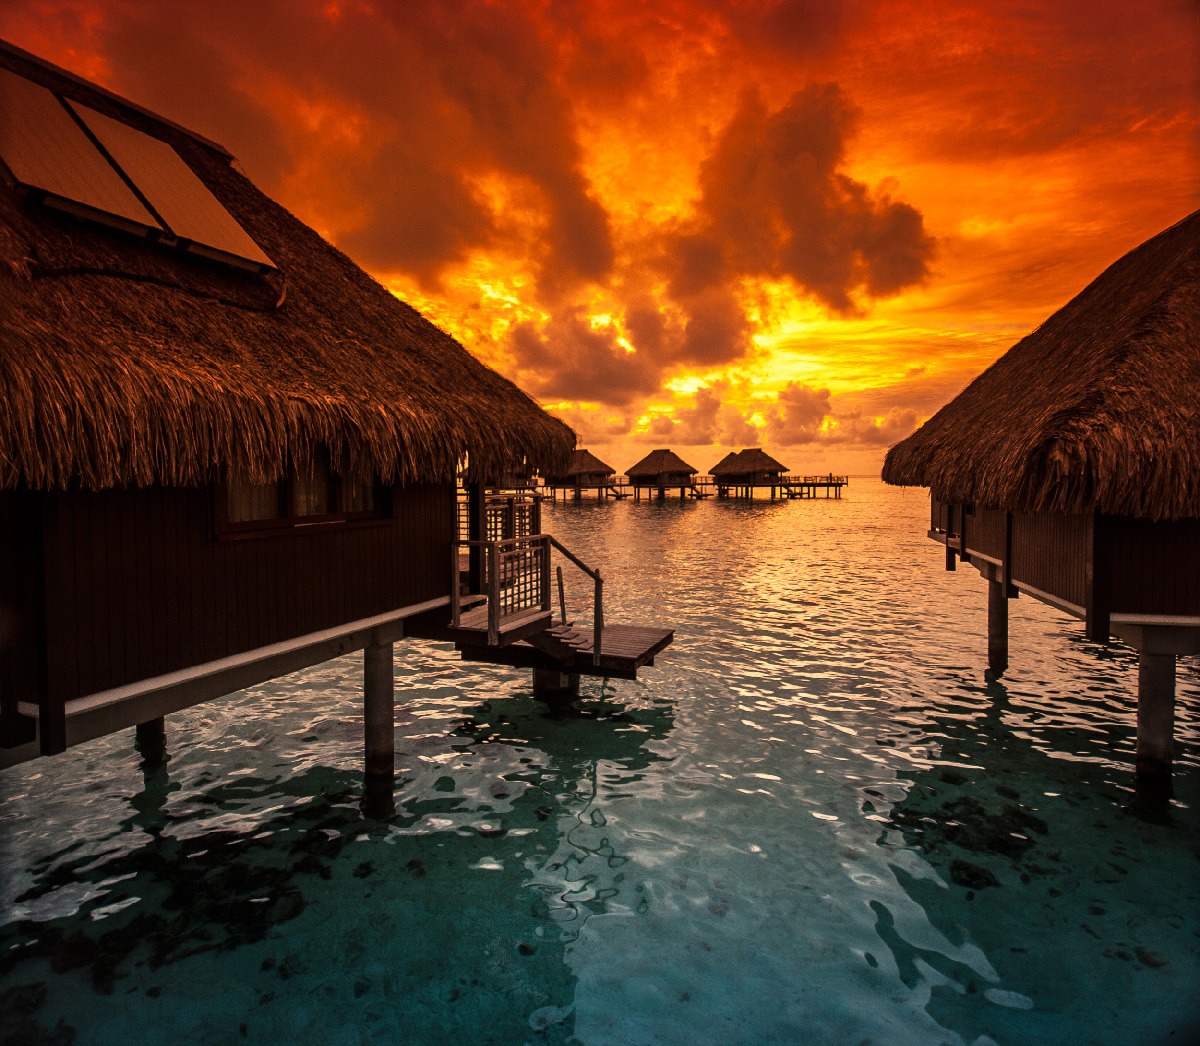 Tahiti Accommodation Over Water Bungalows: Photo Of The Moment: Fire In The Sky, Tahiti